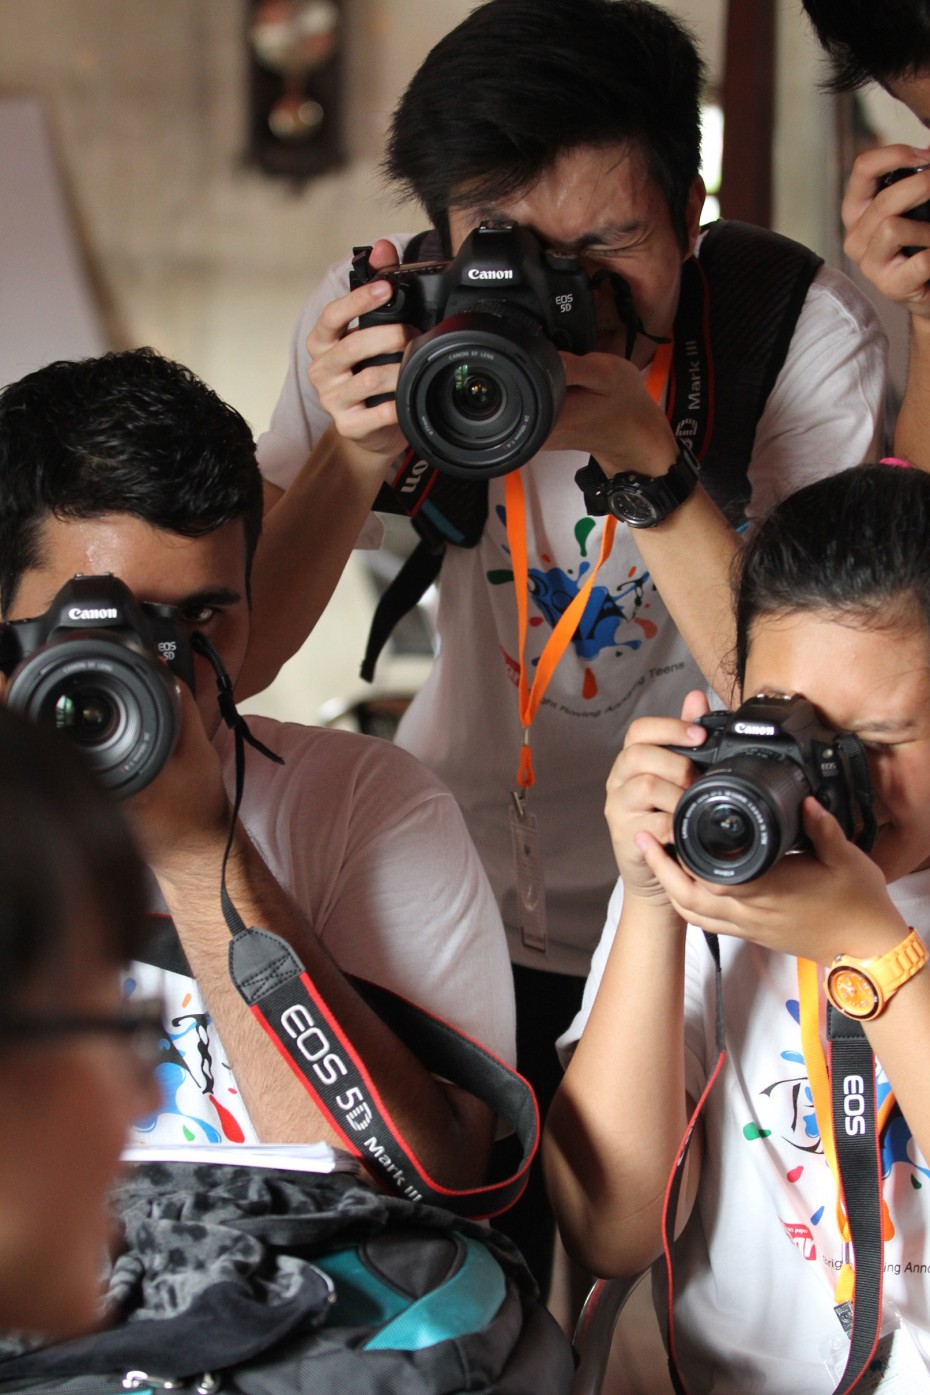 Some of the participants putting their new-found photojournalism skills to the test.